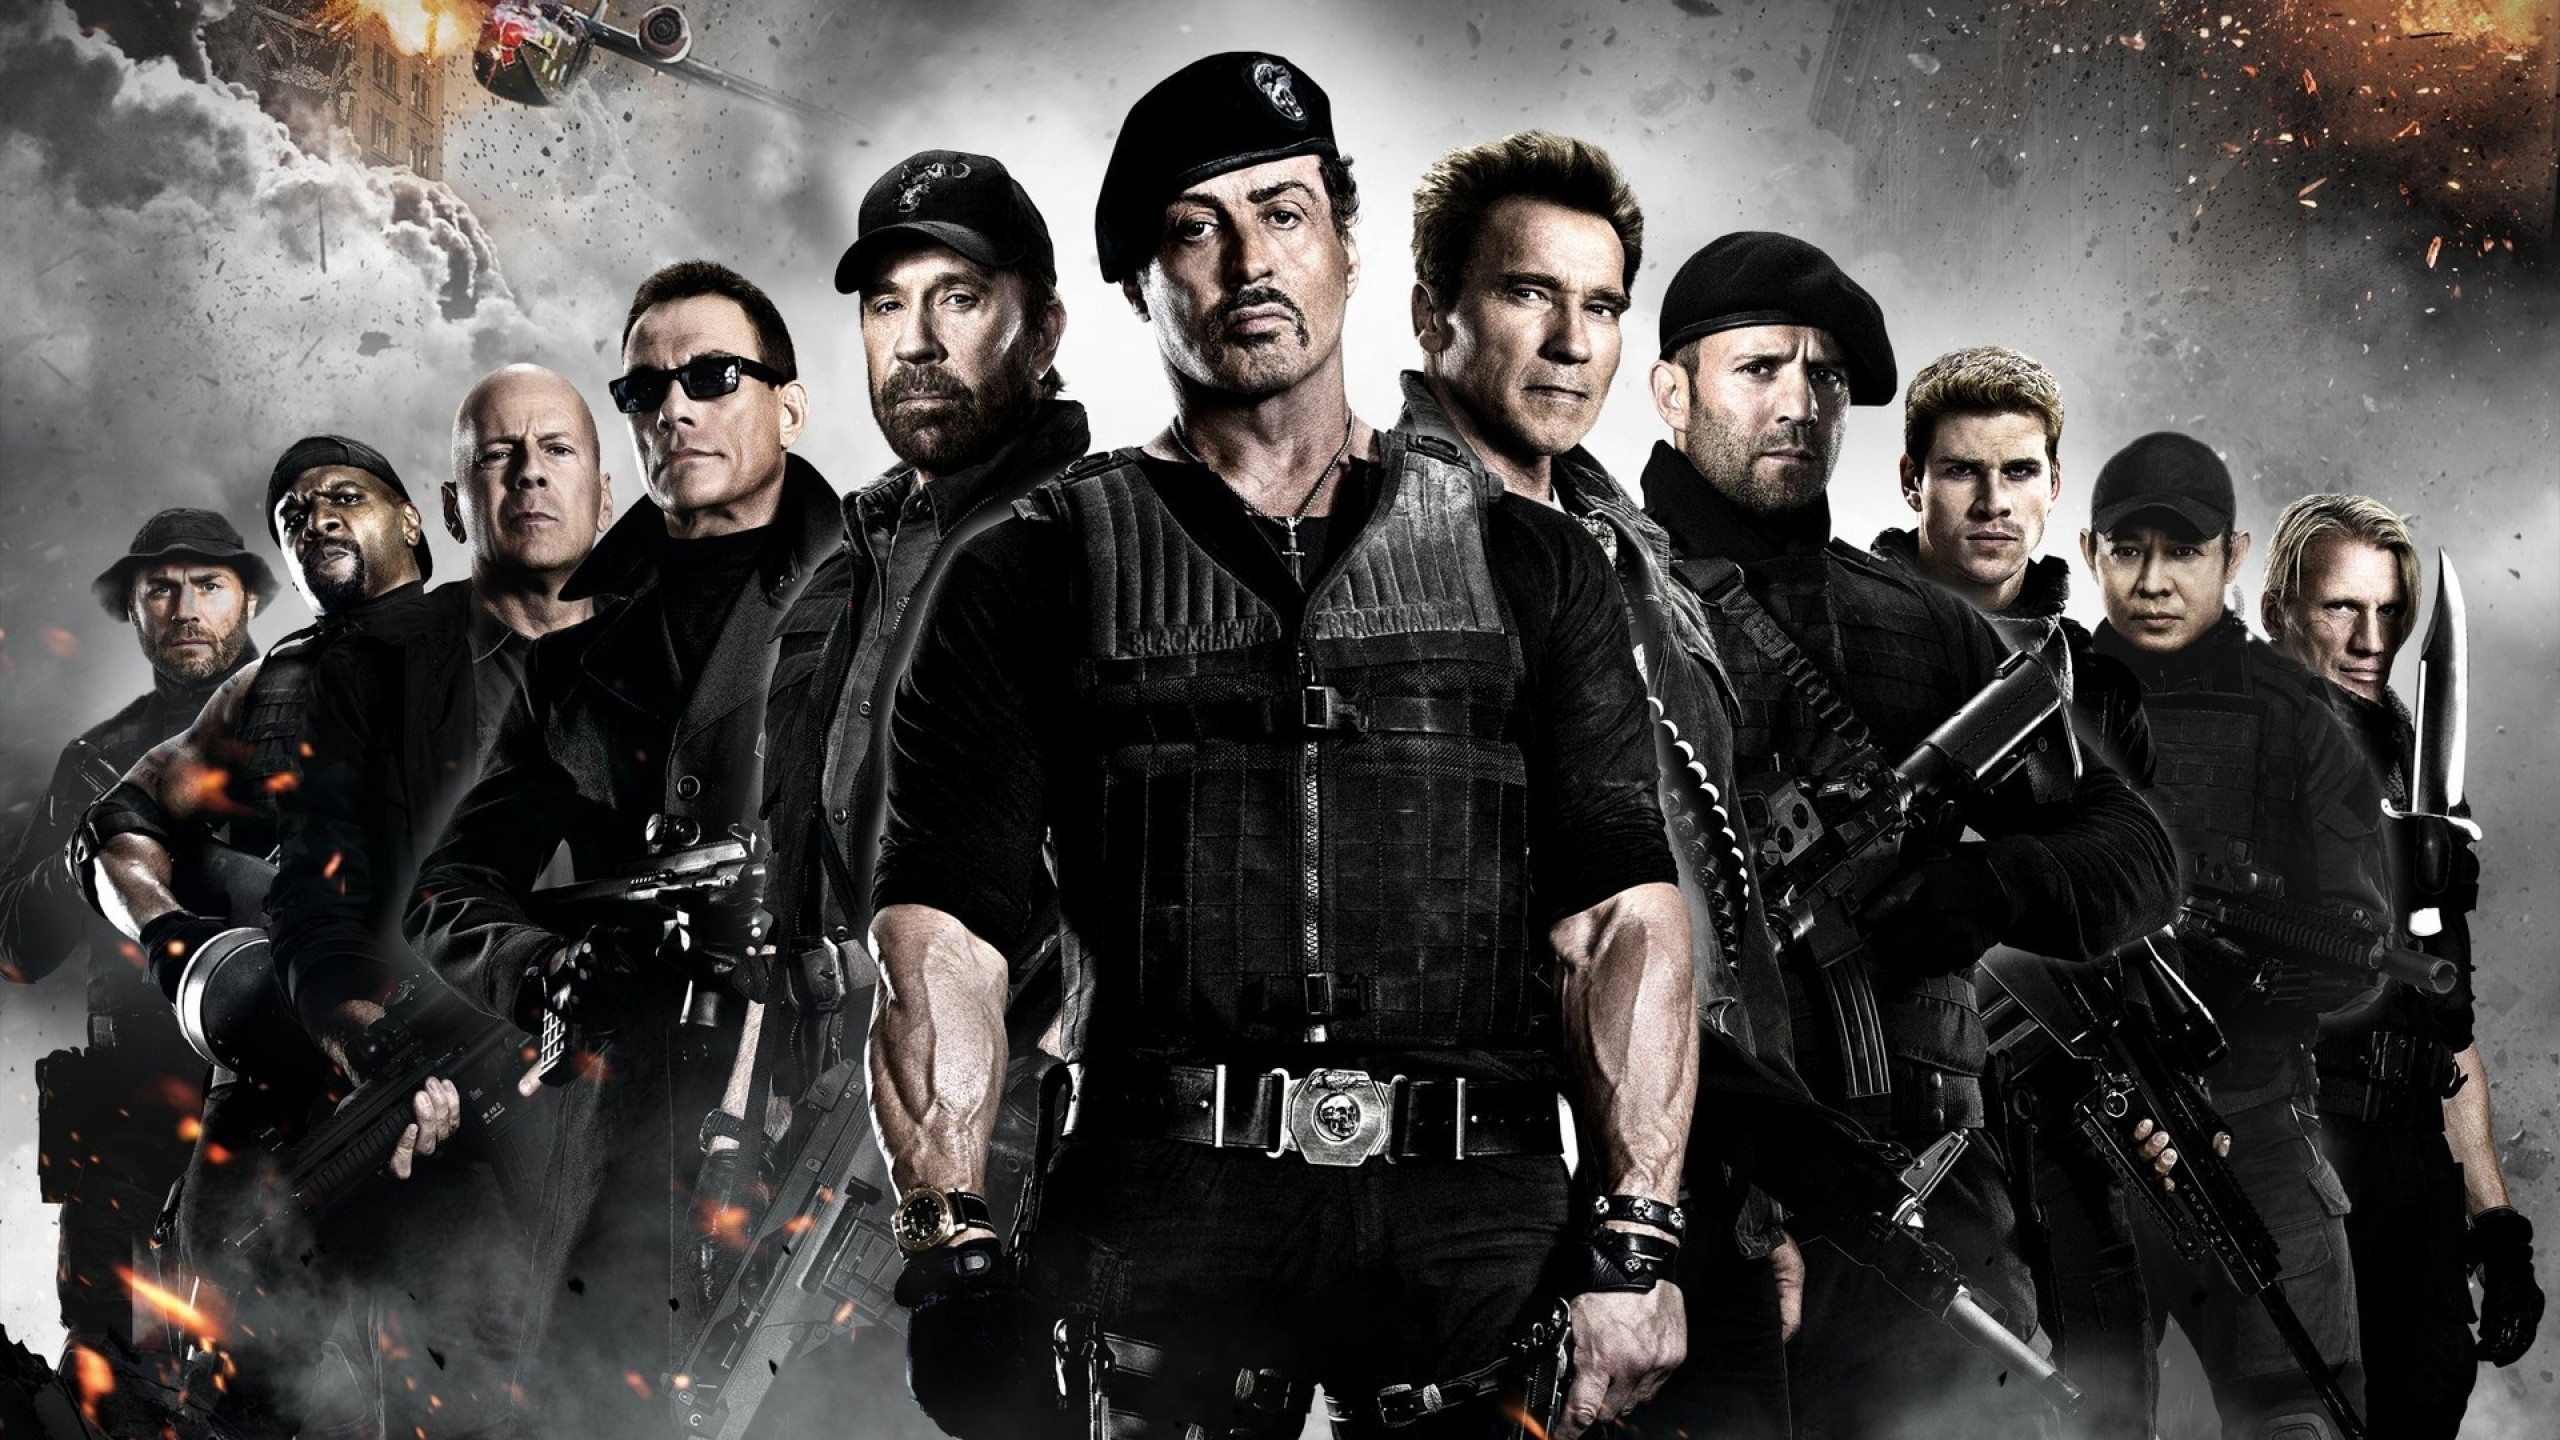 2560x1440 chuck norris jason statham bruce willis sylvester stallone van damme  expendables 2 1920x1080 wall Art HD